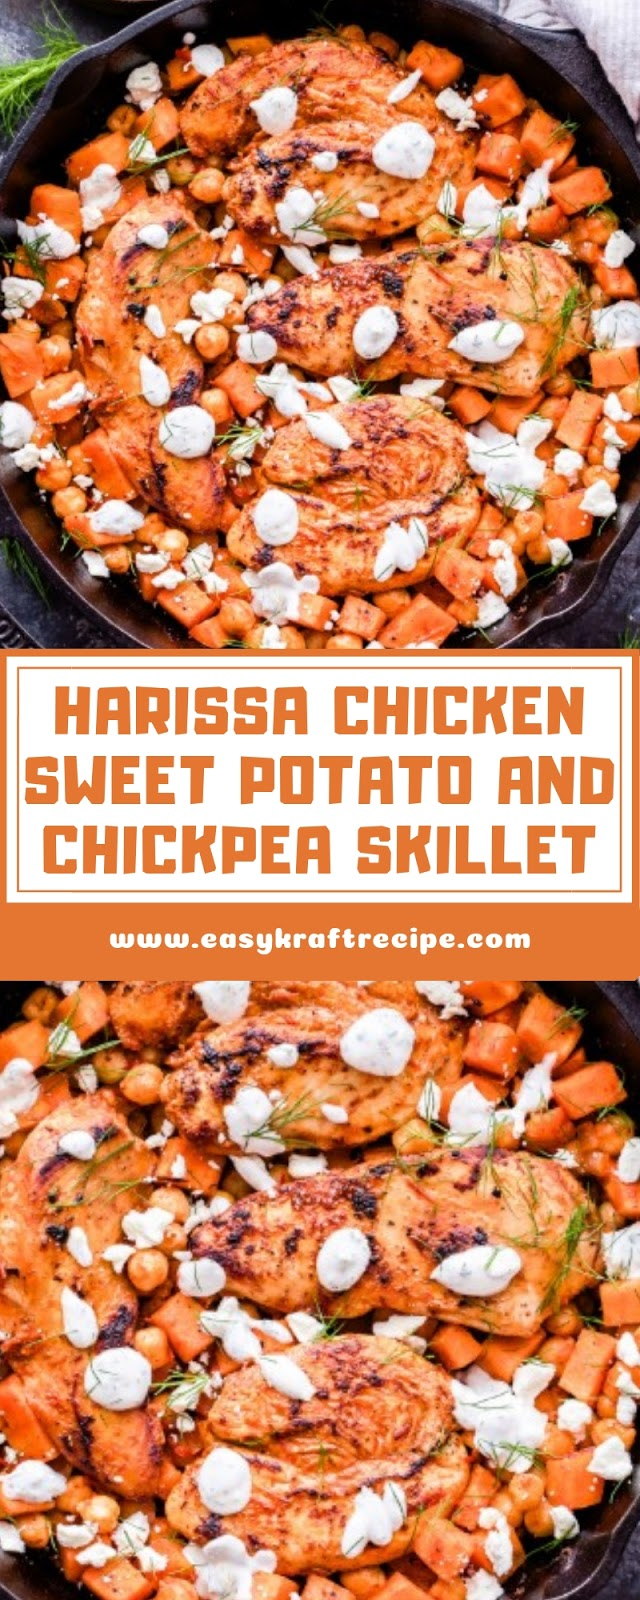 HARISSA CHICKEN SWEET POTATO AND CHICKPEA SKILLET